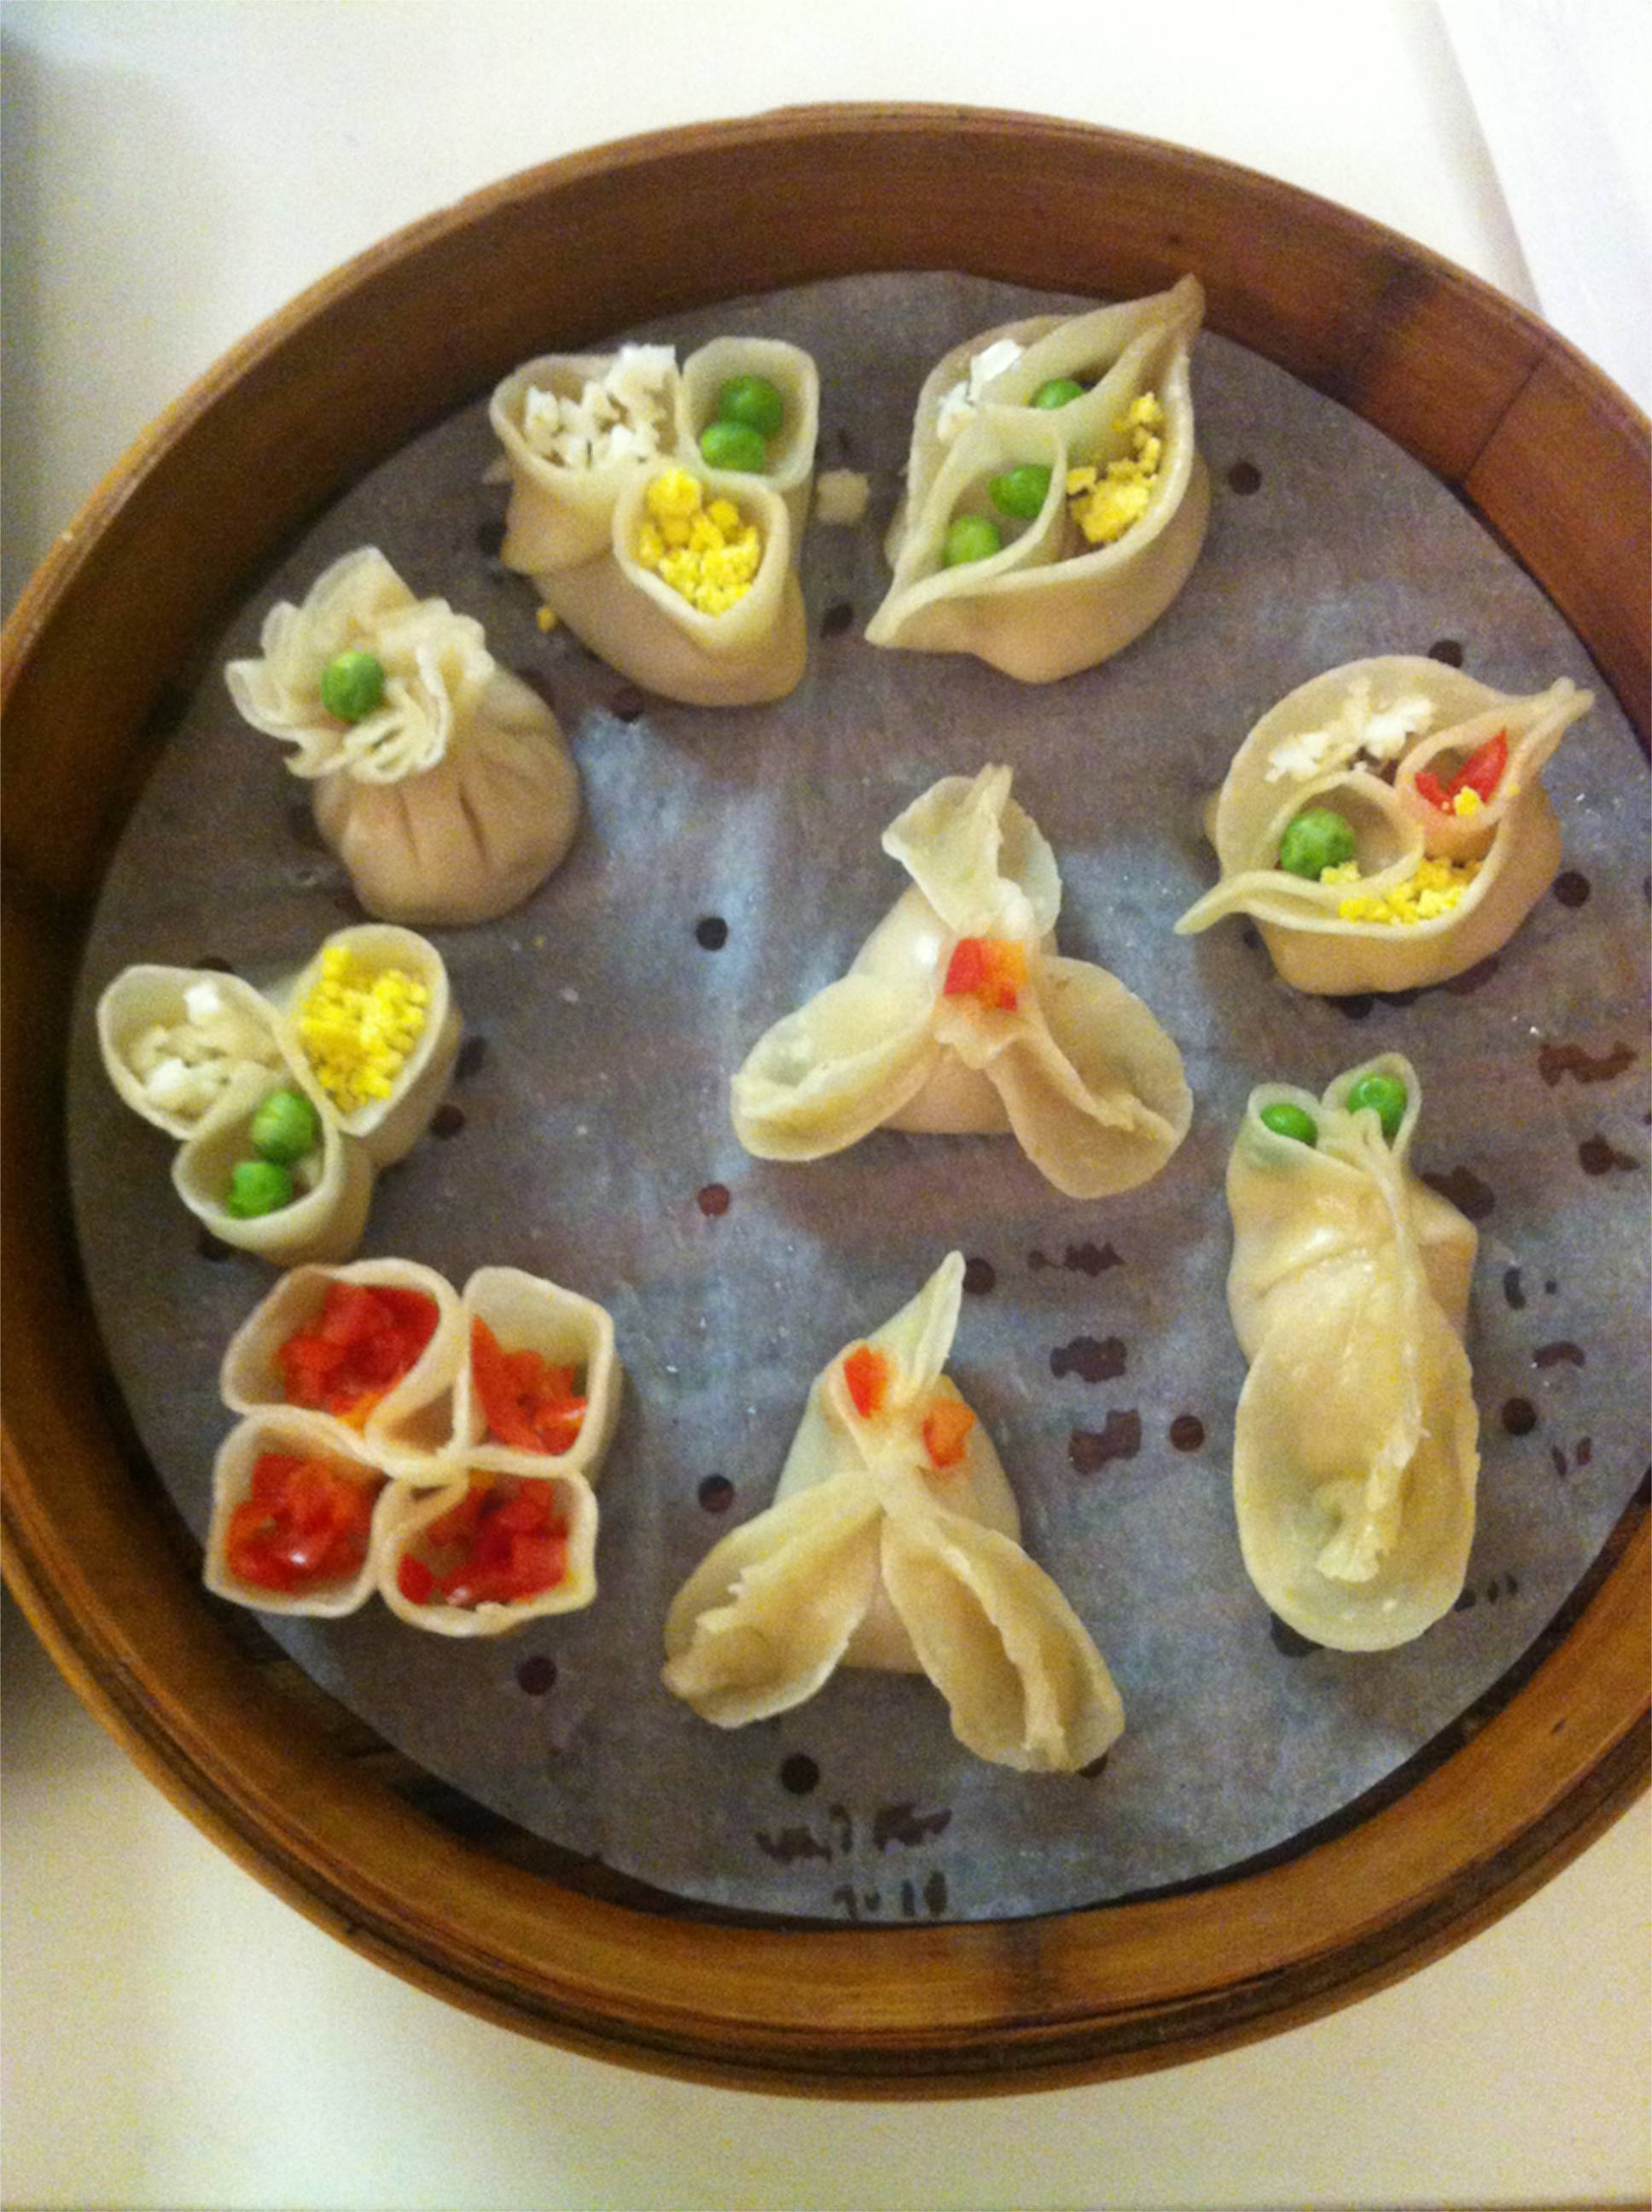 The Chinese Master Chef's perfect example